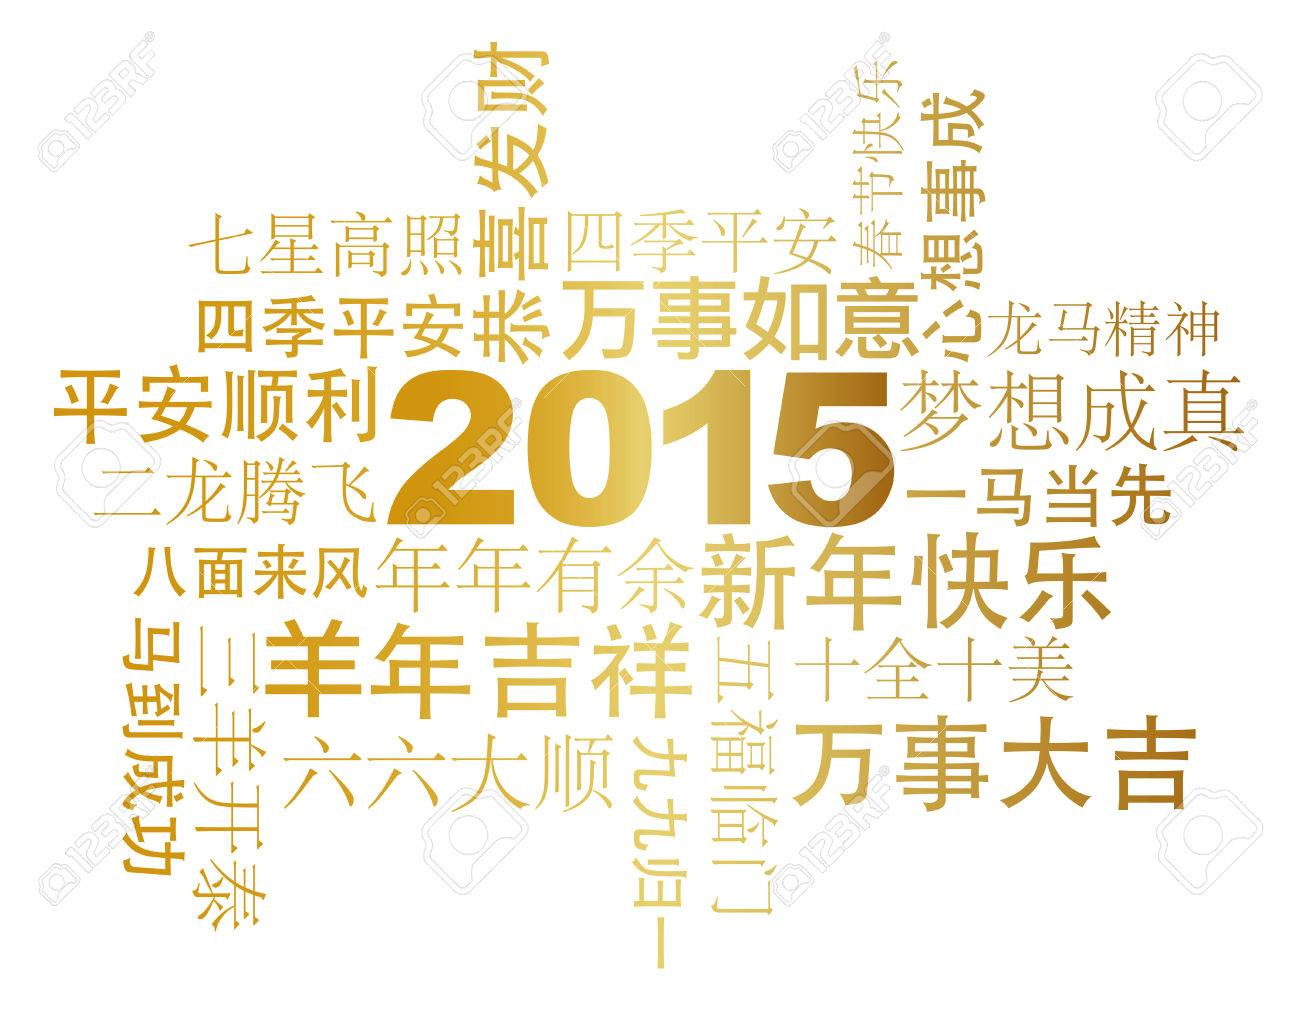 2015 Chinese Lunar New Year Greetings Text Wishing Health Good